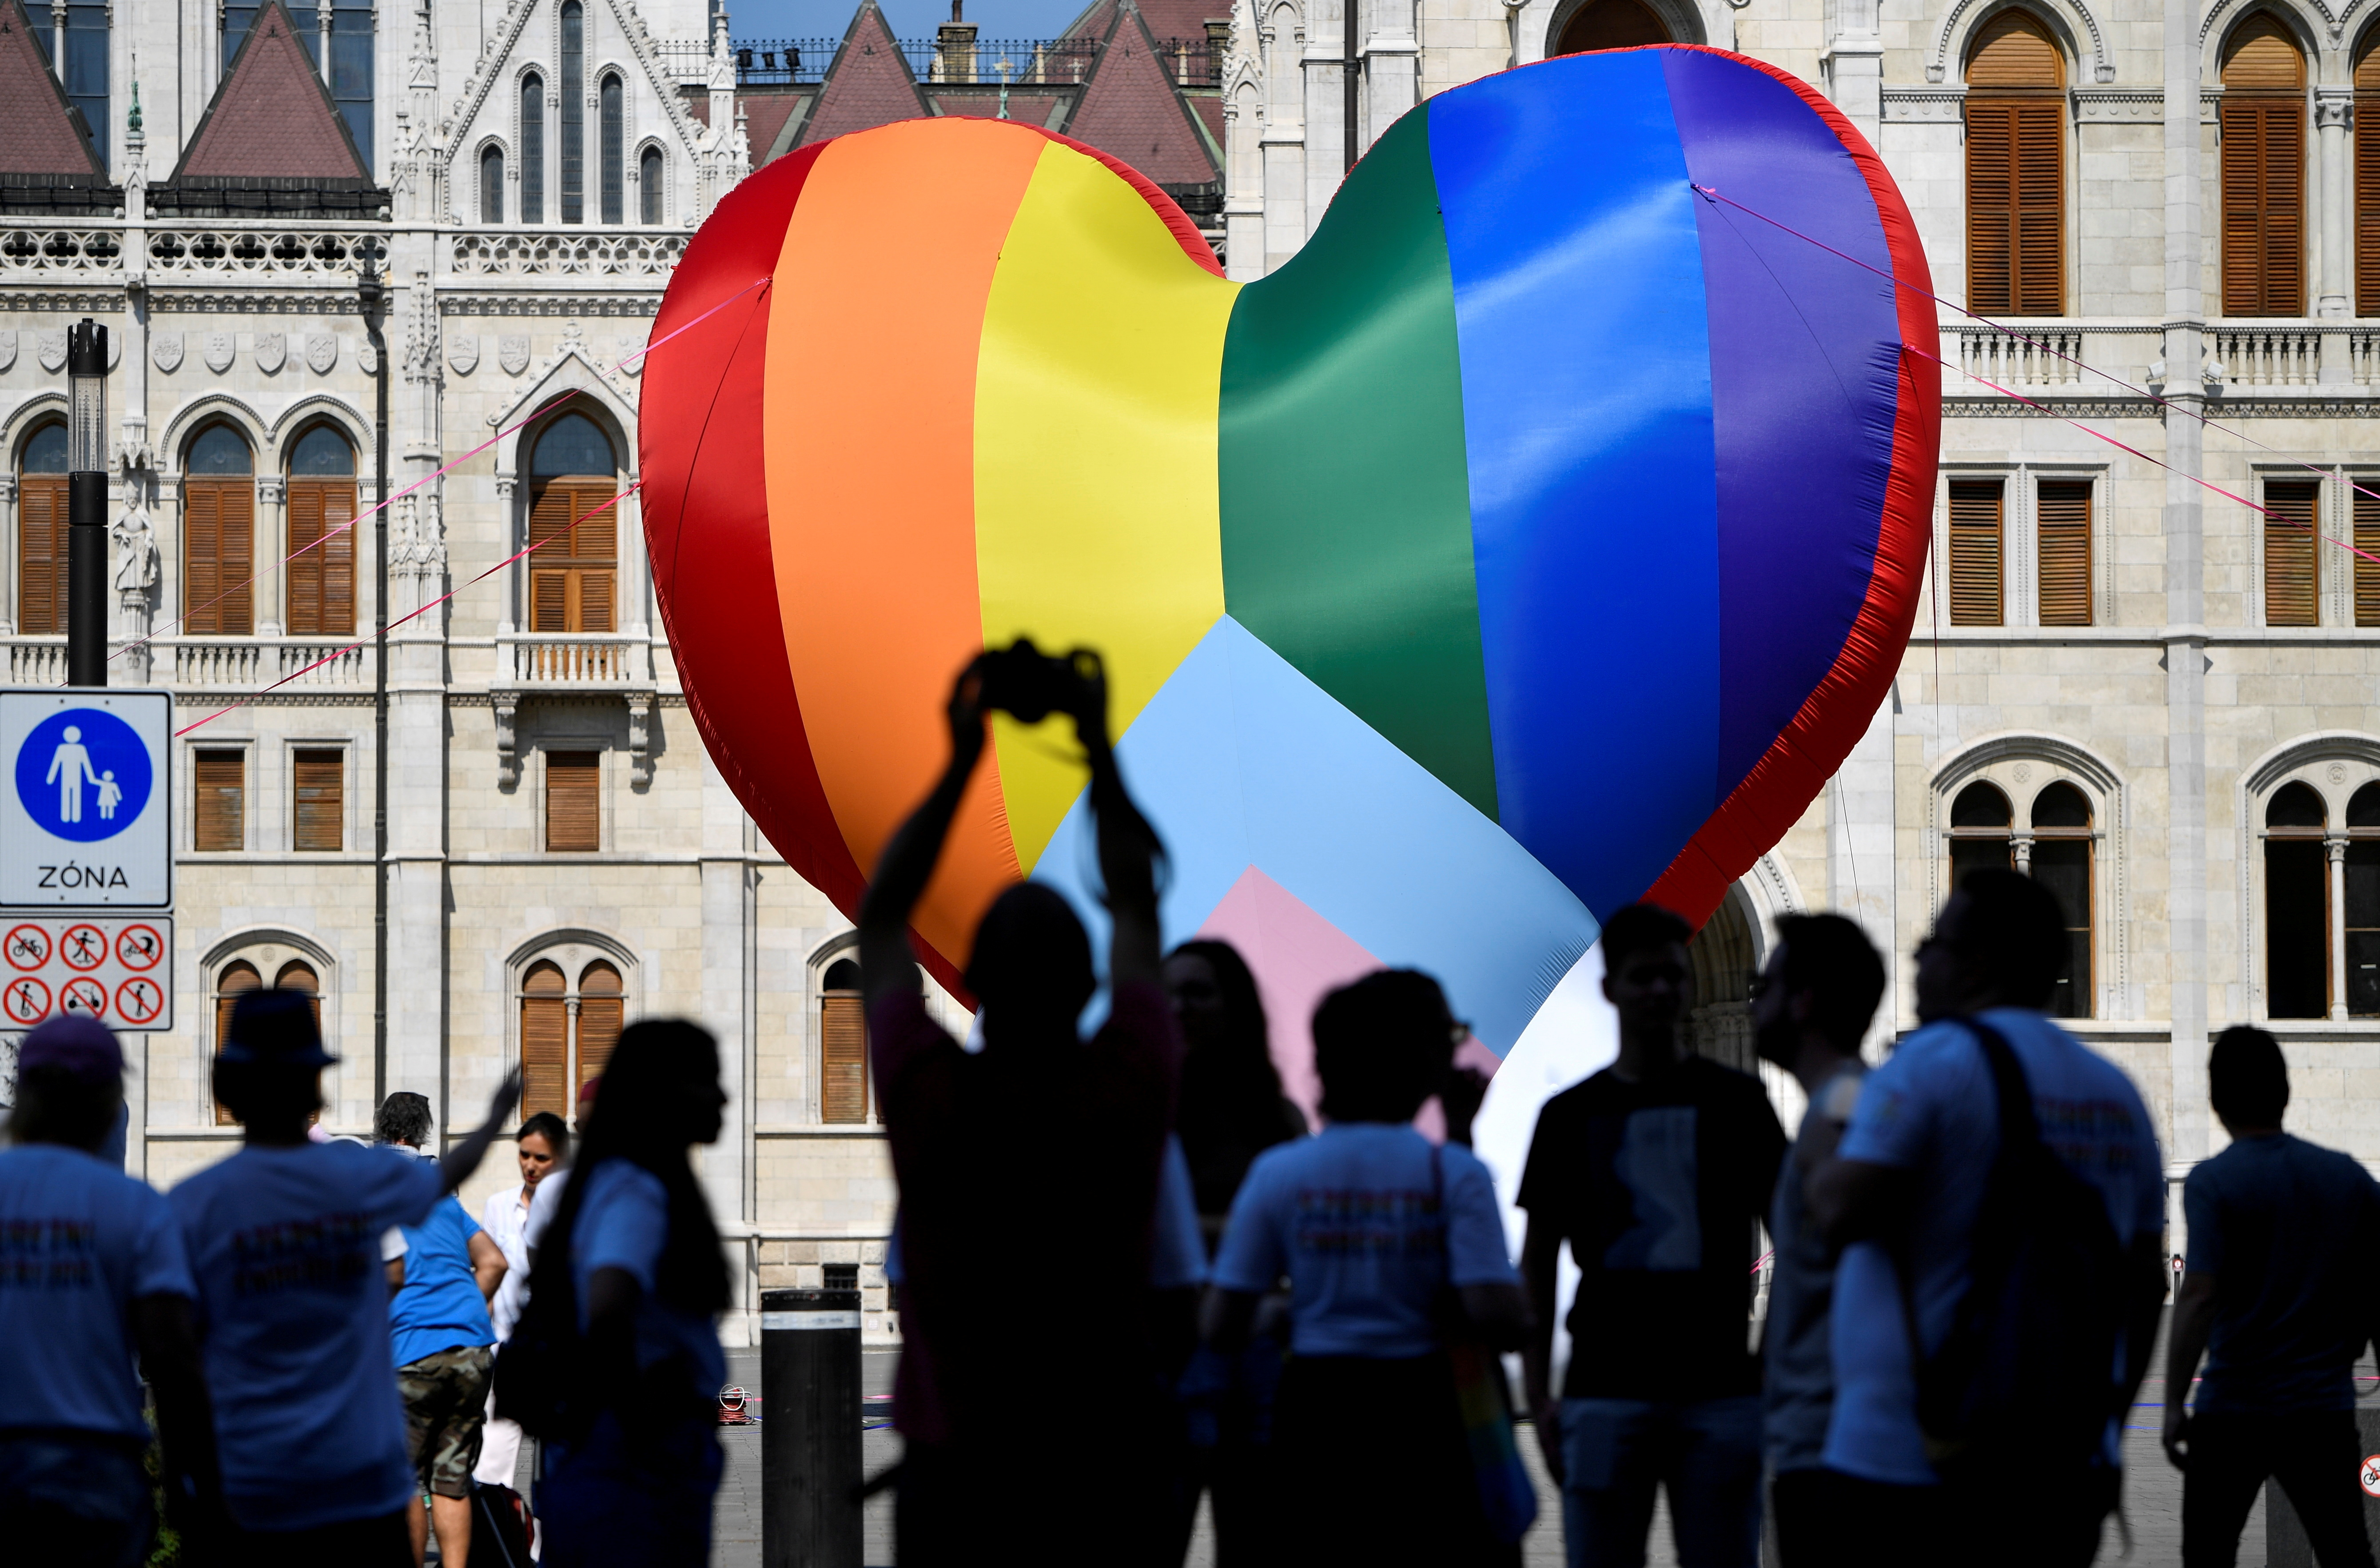 People gather in front of a huge rainbow balloon put up by members of Amnesty International and Hatter, an NGO promoting LGBT rights, at Hungary's parliament in Budapest, Hungary, July 8, 2021. REUTERS/Marton Monus